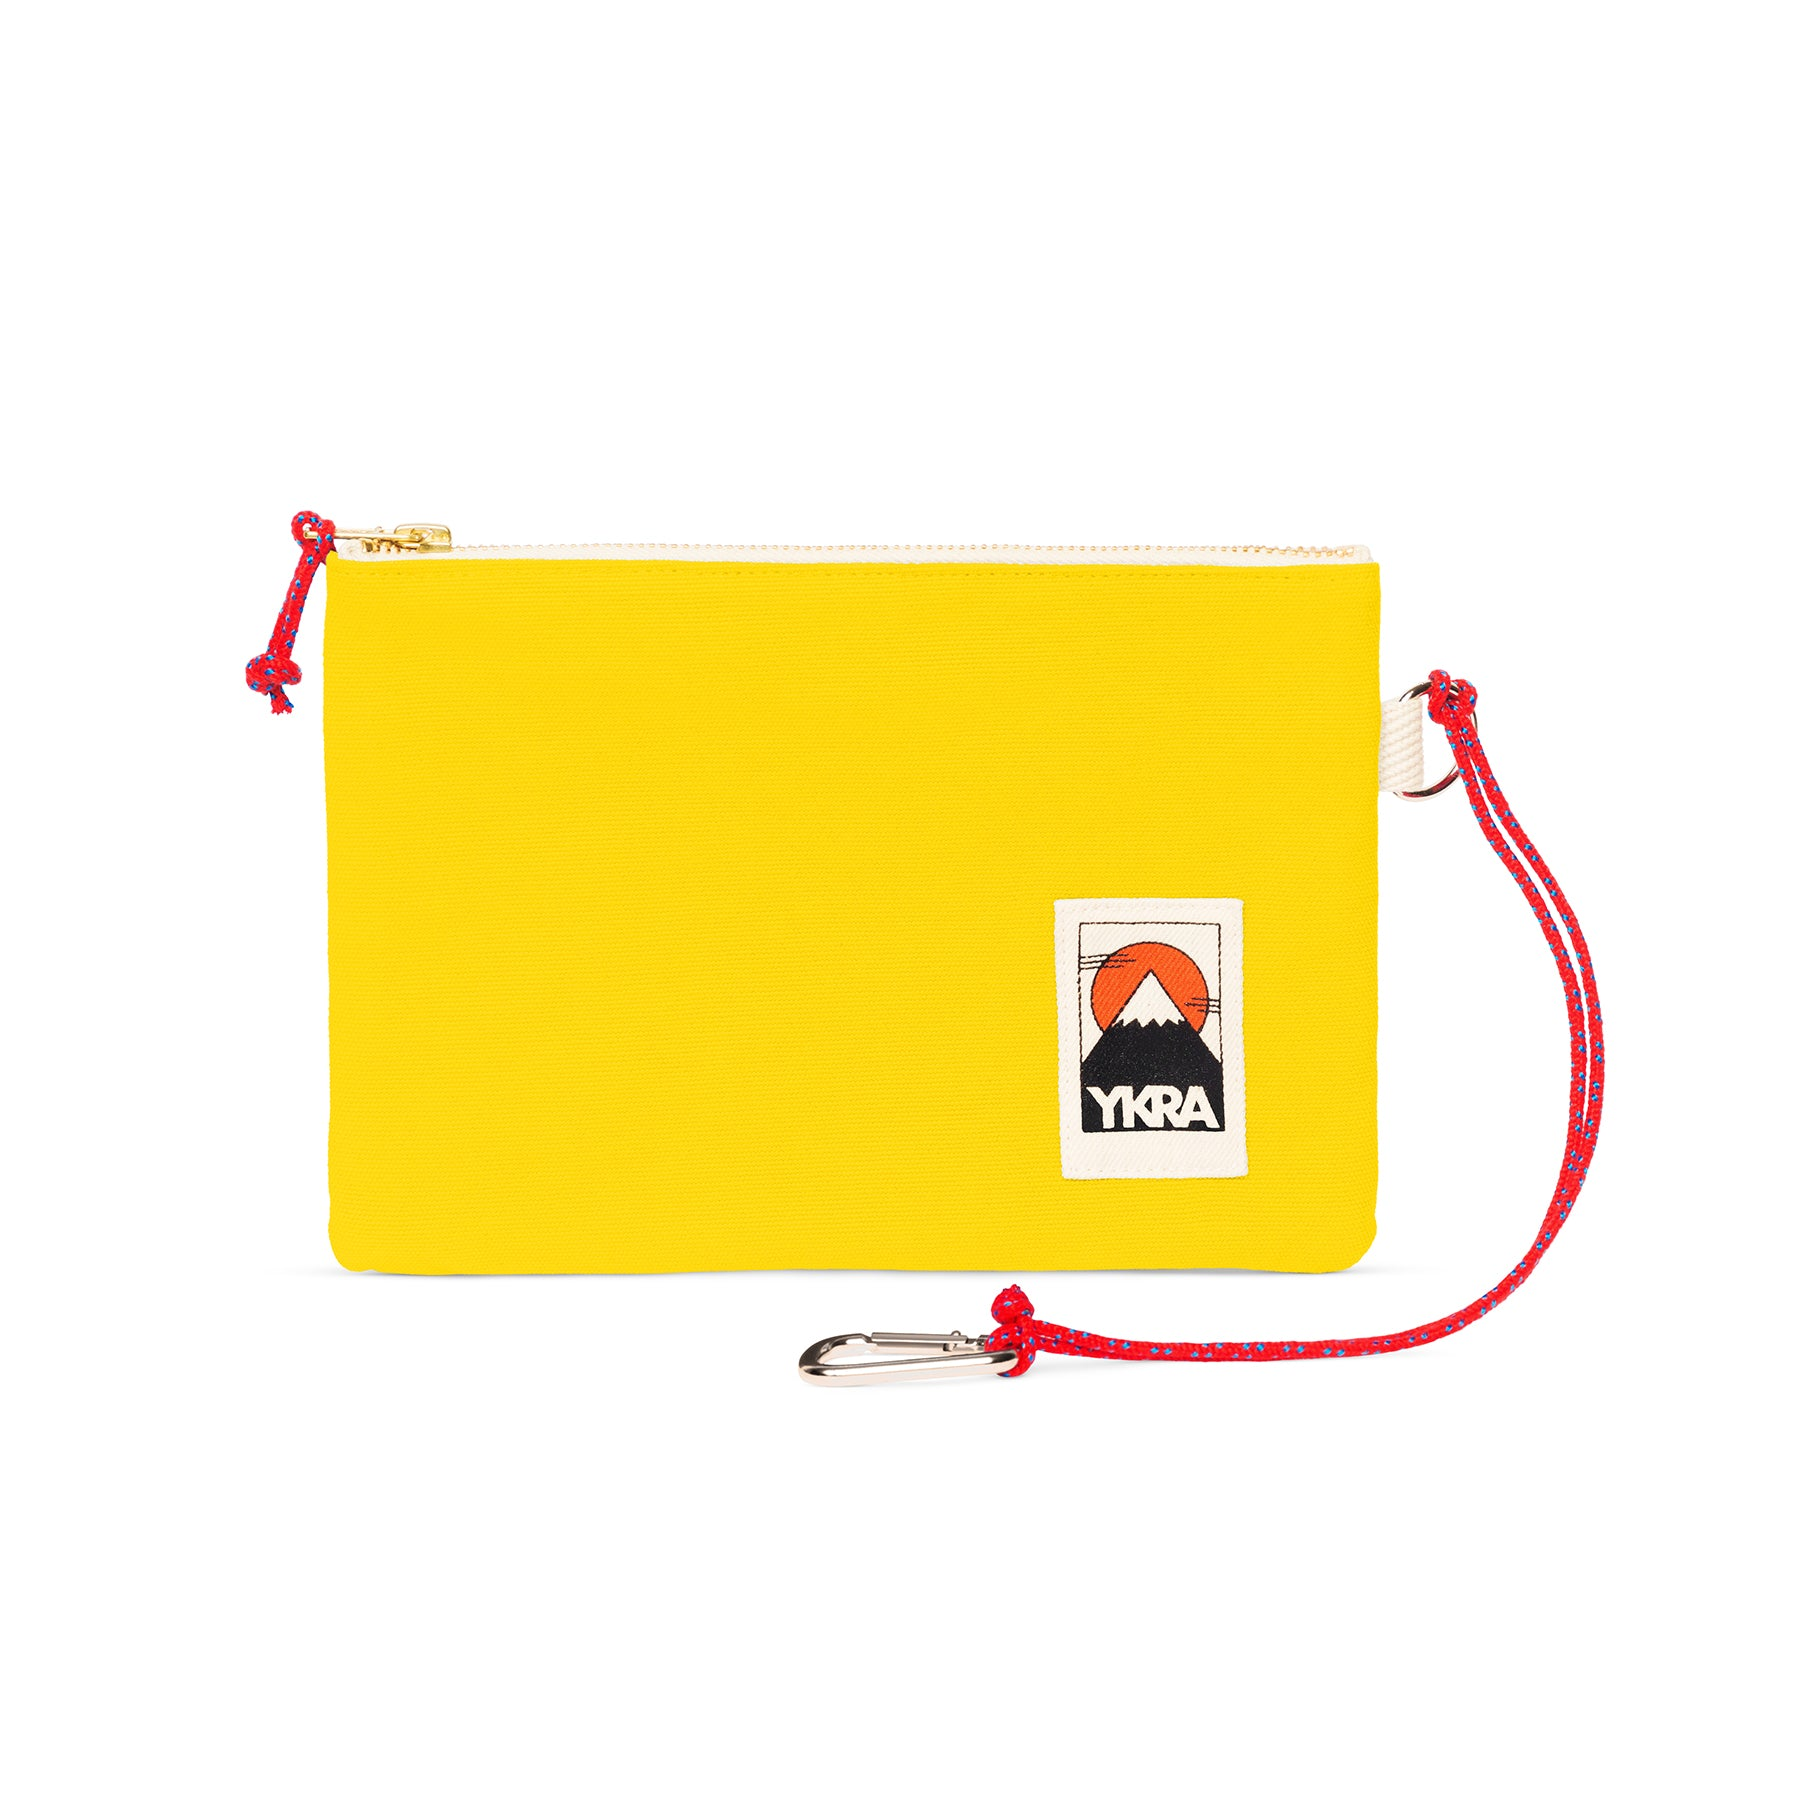 POUCH - YELLOW - YKRA